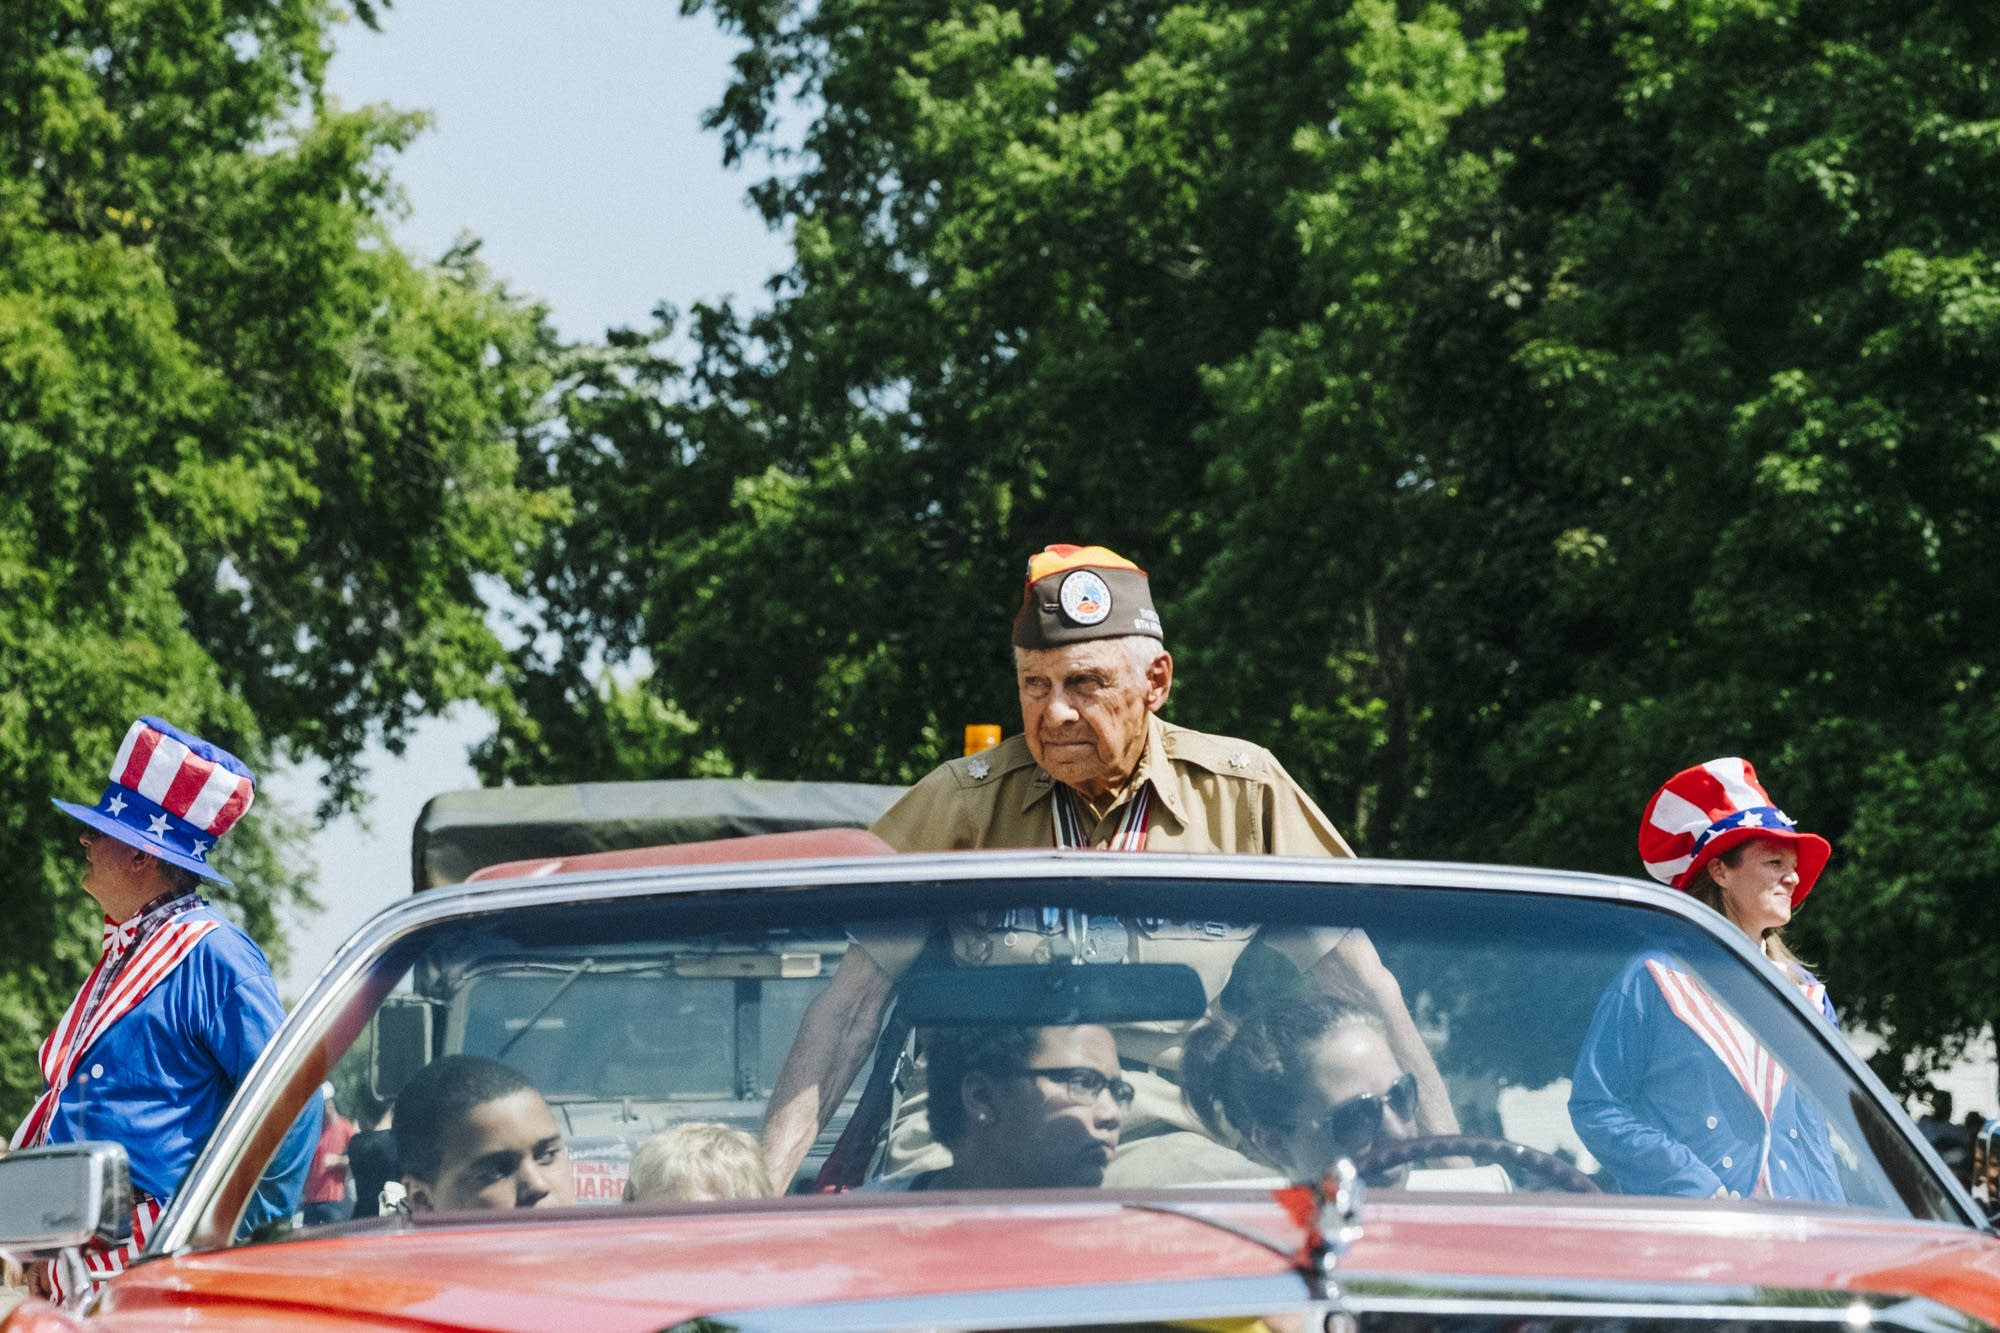 World War II veteran Fred Gordon rides in the parade.